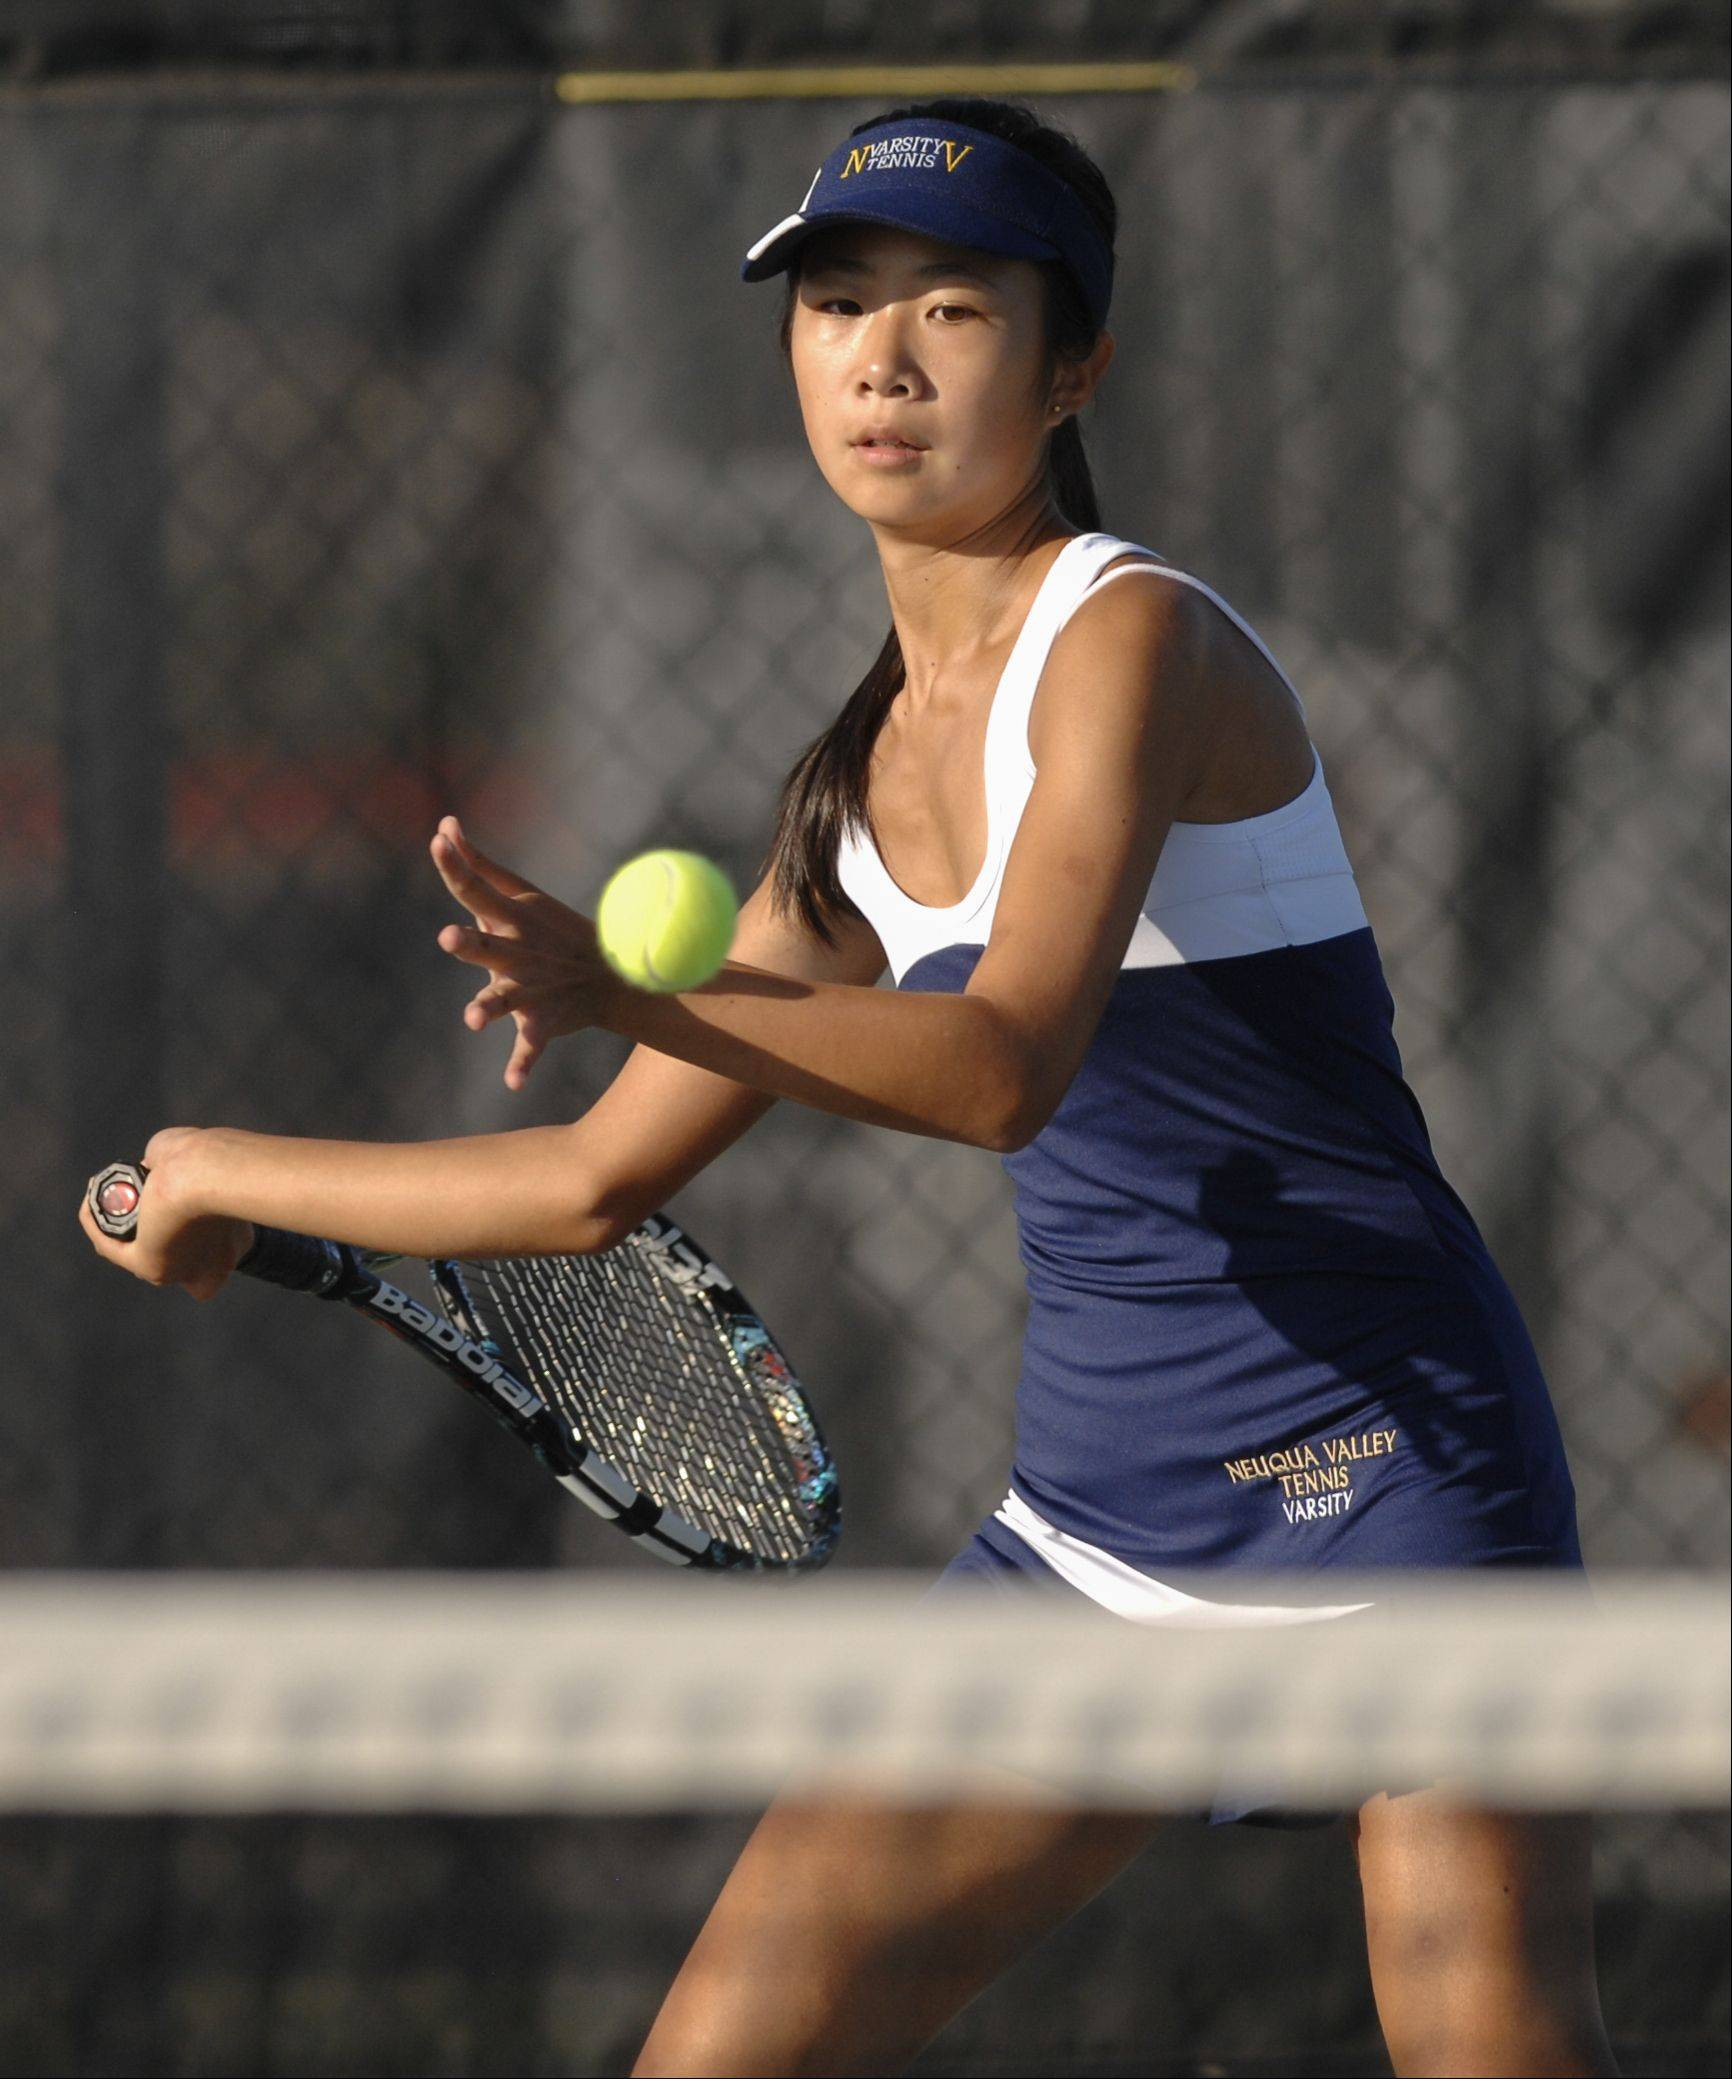 Jen Chen of Neuqua Valley plays Madhura Patil of Naperville North in girls tennis at Neuqua Valley high school Wednesday.